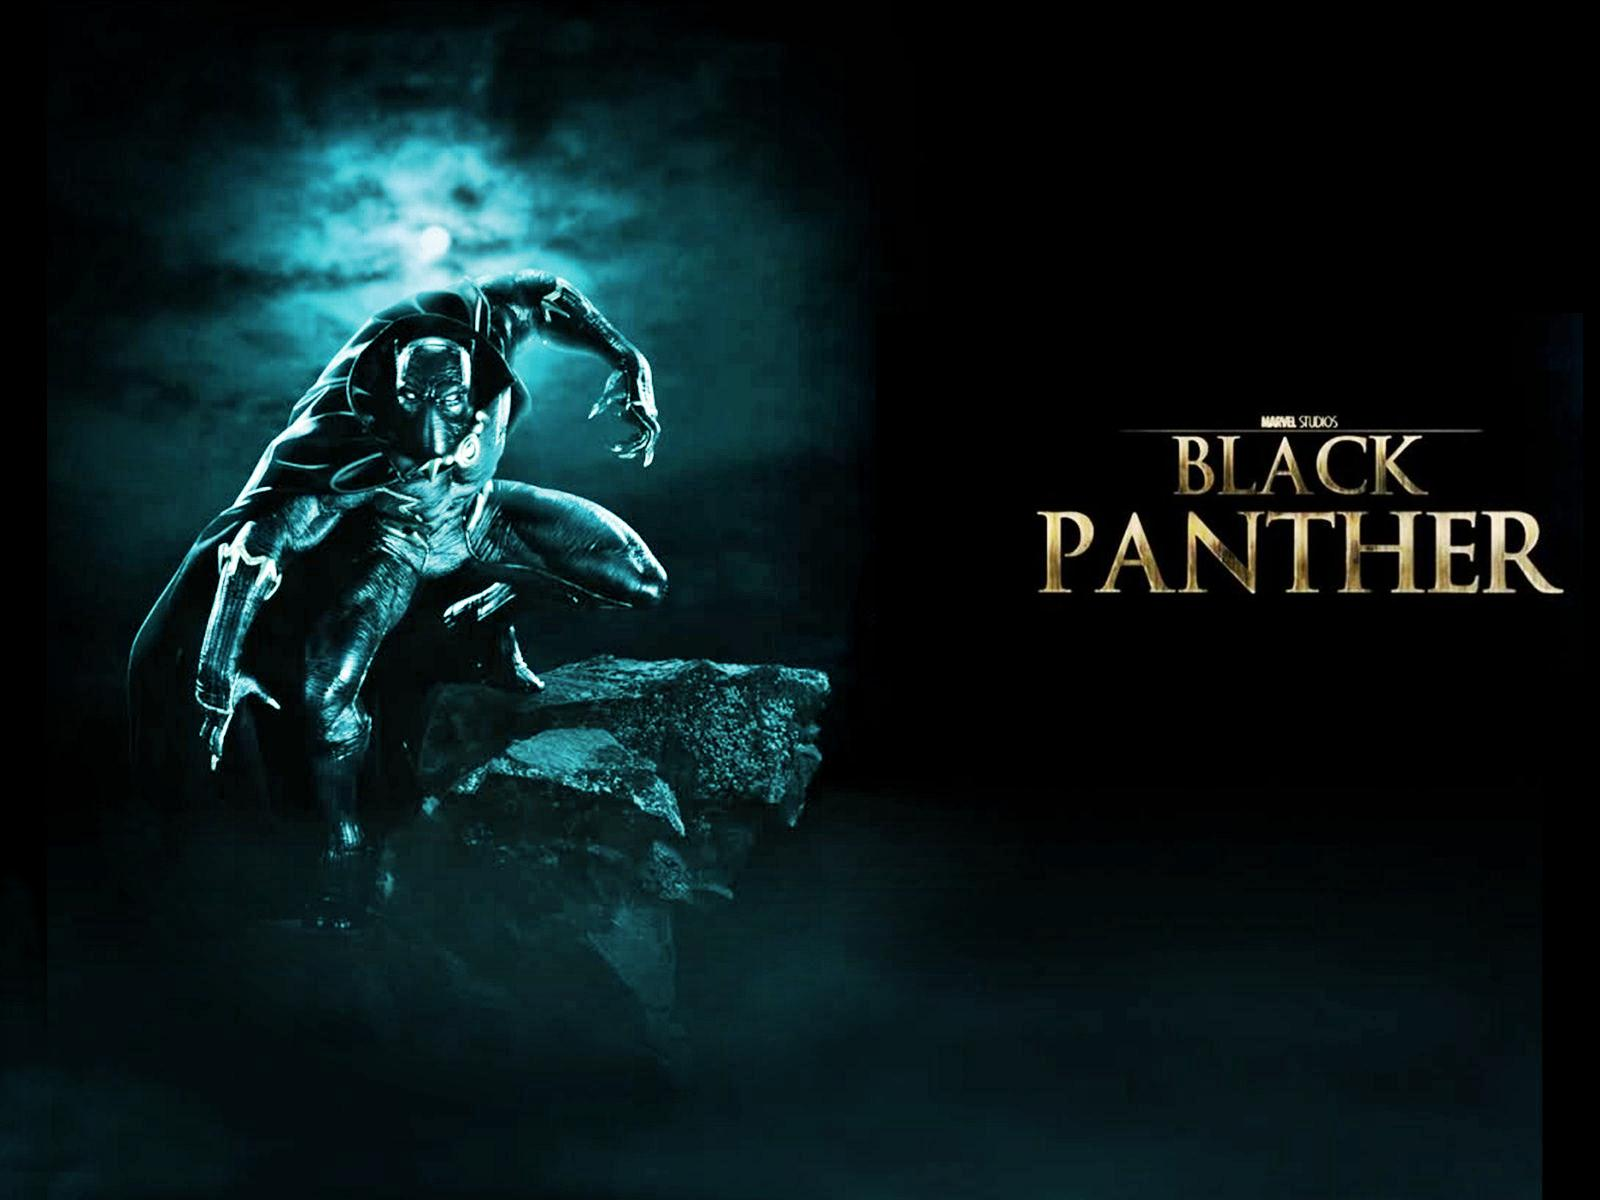 Marvel Black Panther 2017 Movie Coming HD Wallpaper 1600x1200